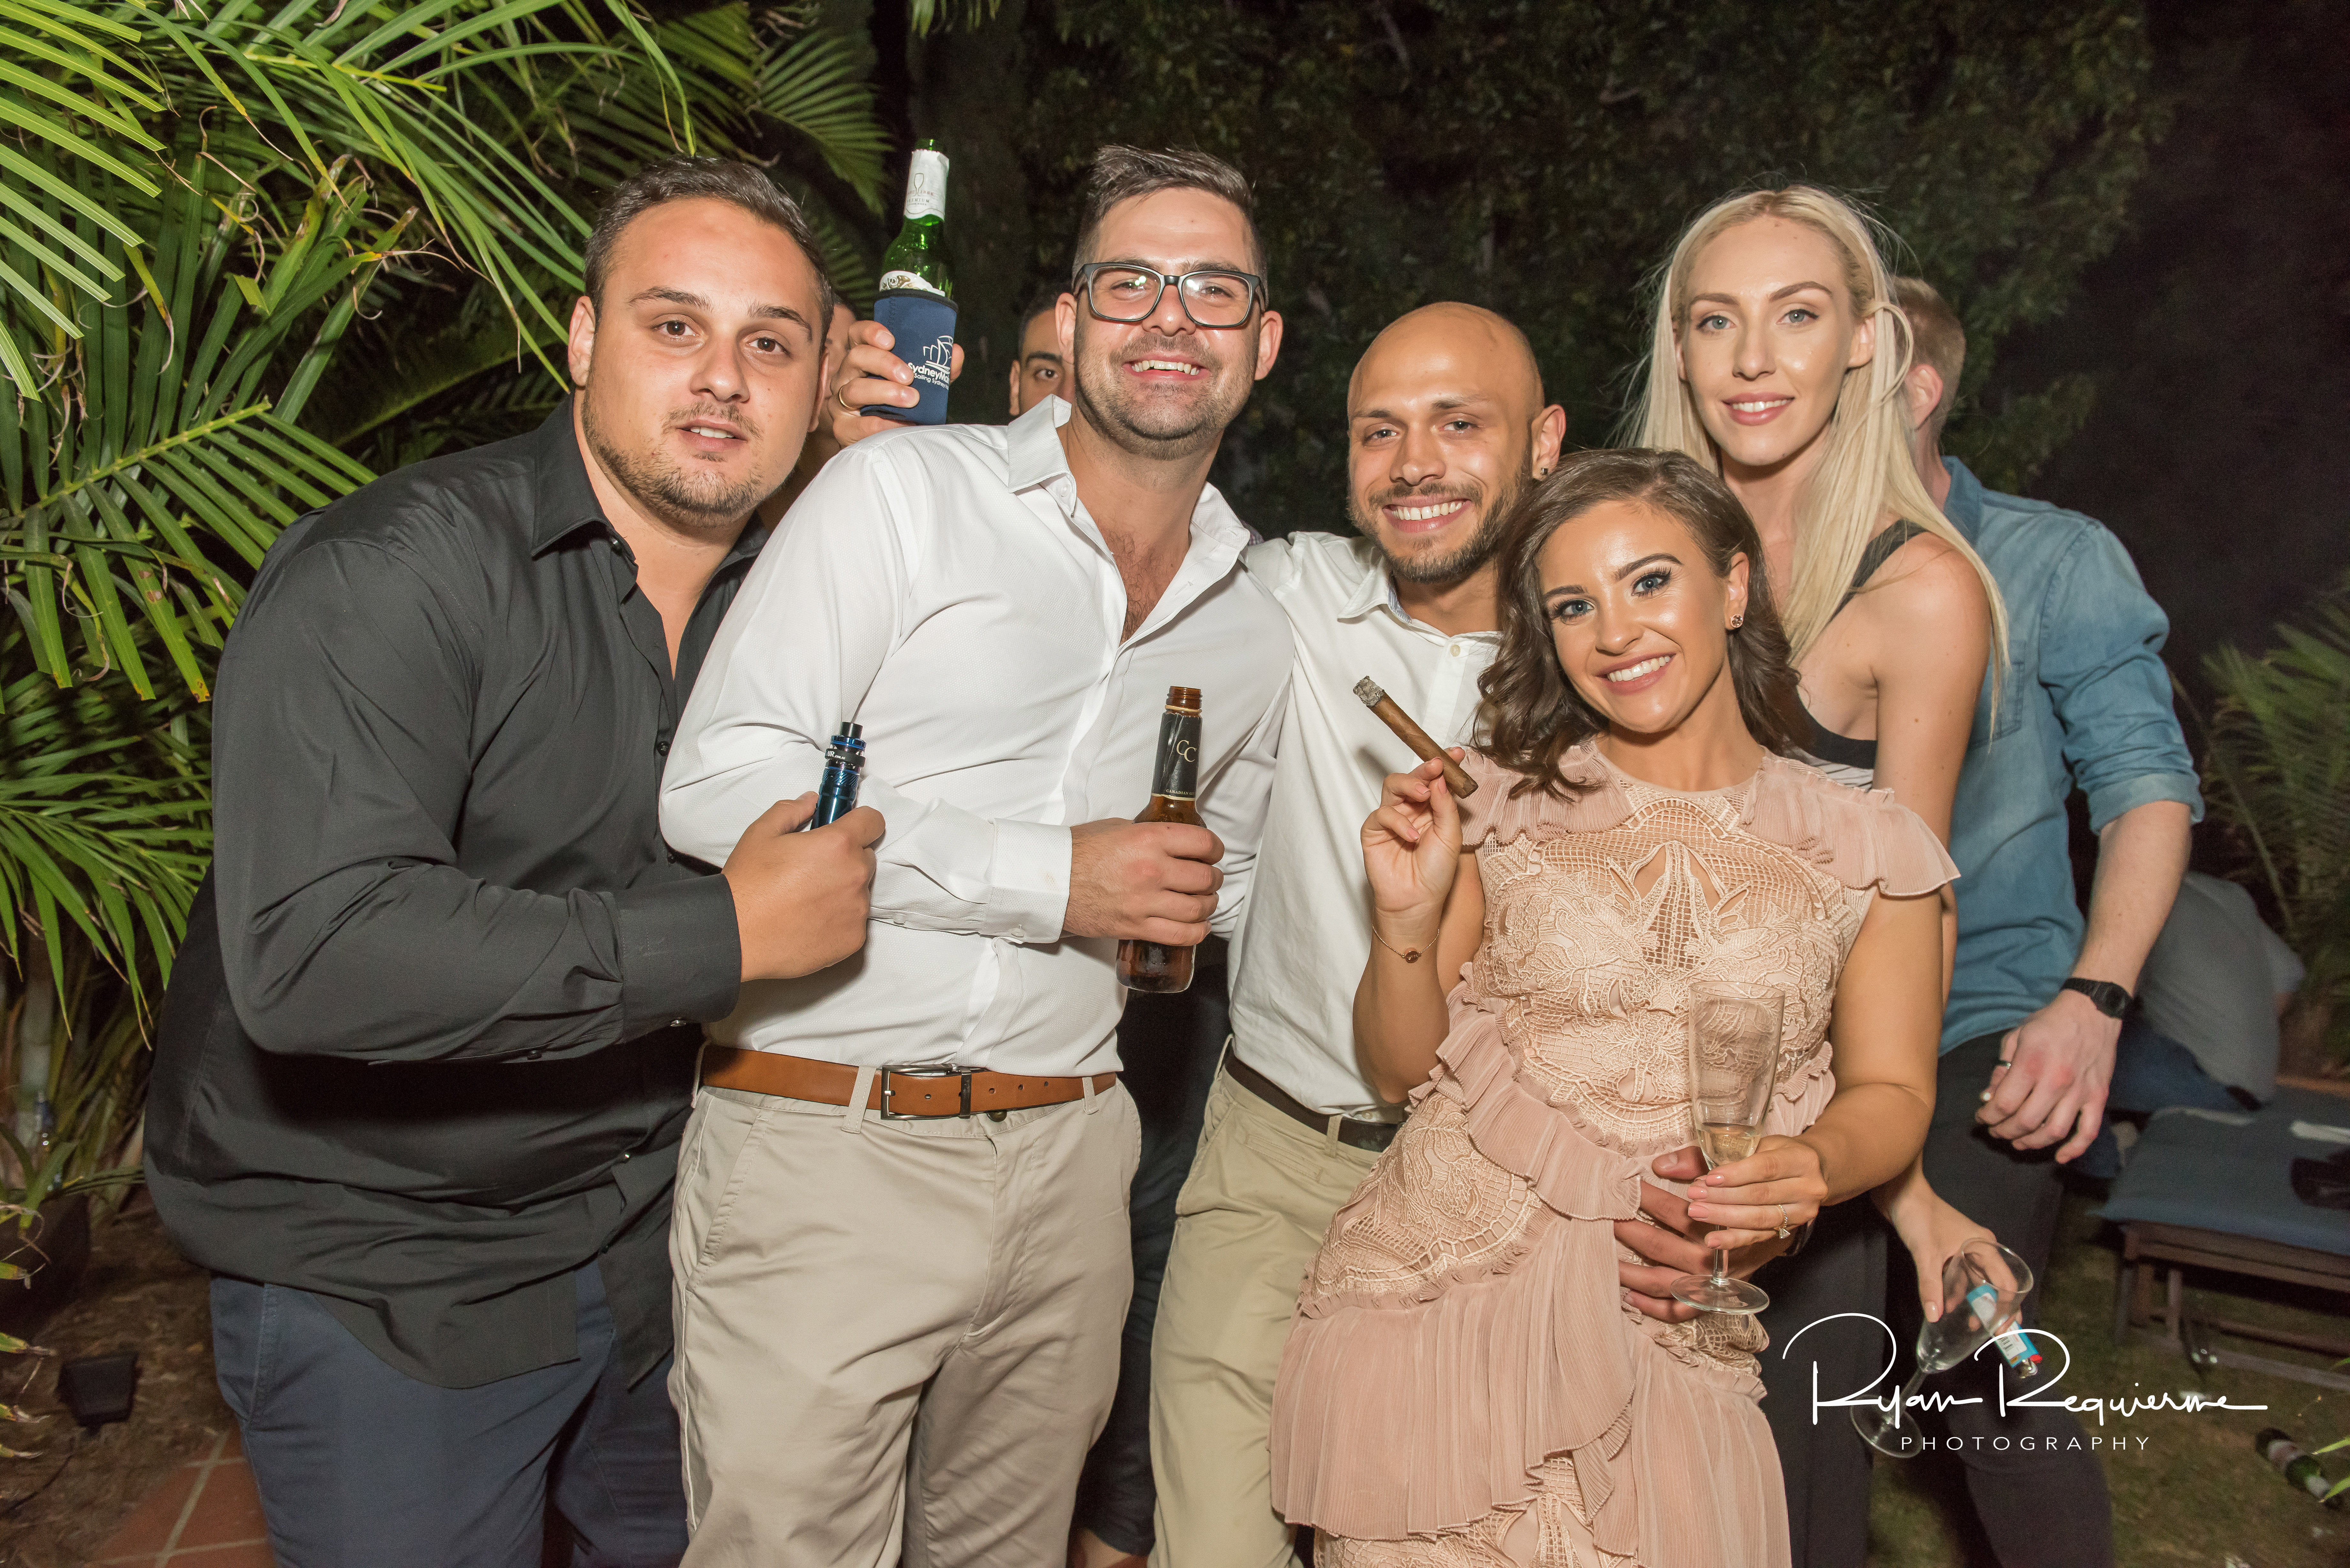 eventphotoau-264